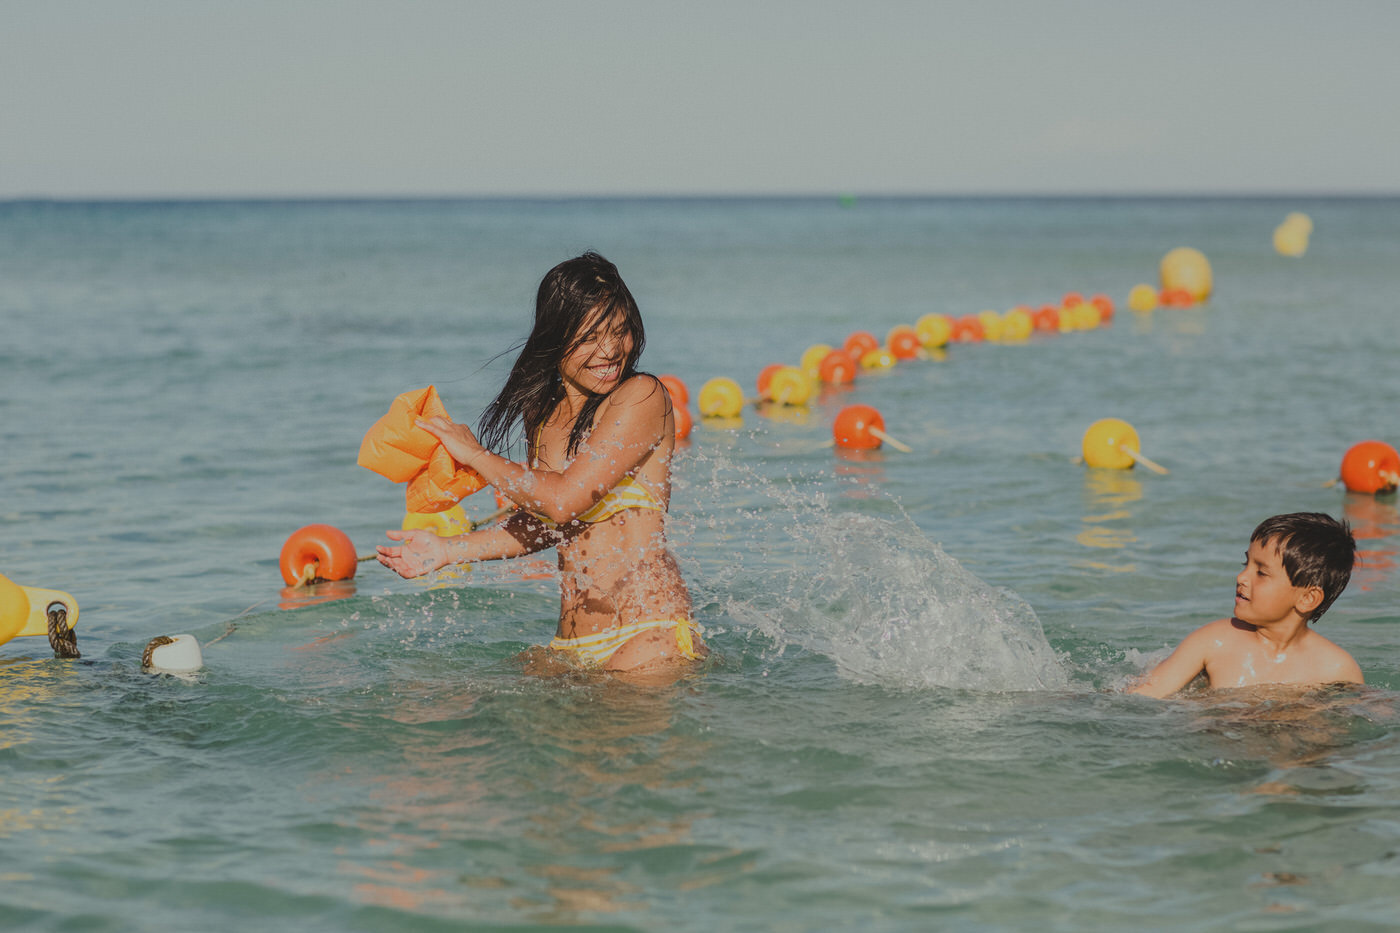 fun in the ocean - girl getting splashed by little boy - swimwear - ocean - fun - happy orange and yellow